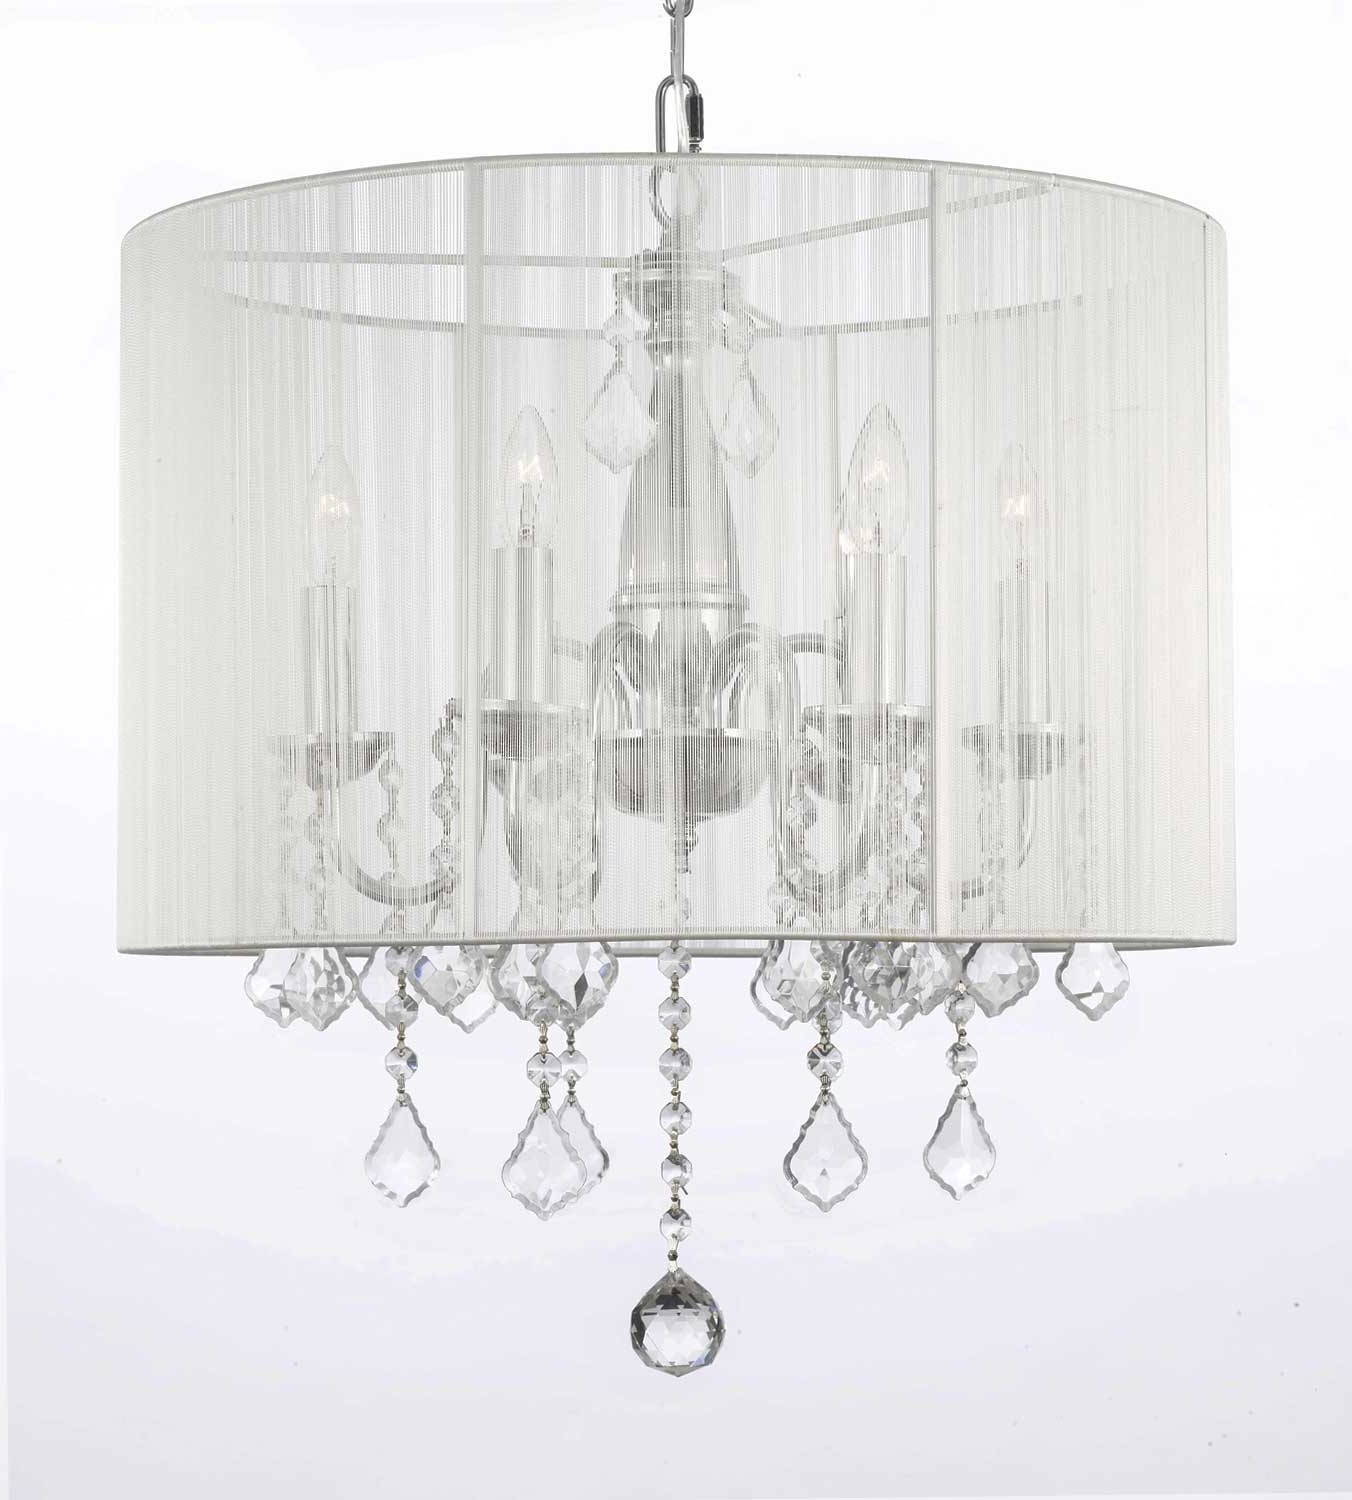 Chandelier With Shades And Crystals Intended For Most Current Chandeliers : Pleasing Chandelier Bulb Shades Images Inspirations (View 11 of 20)